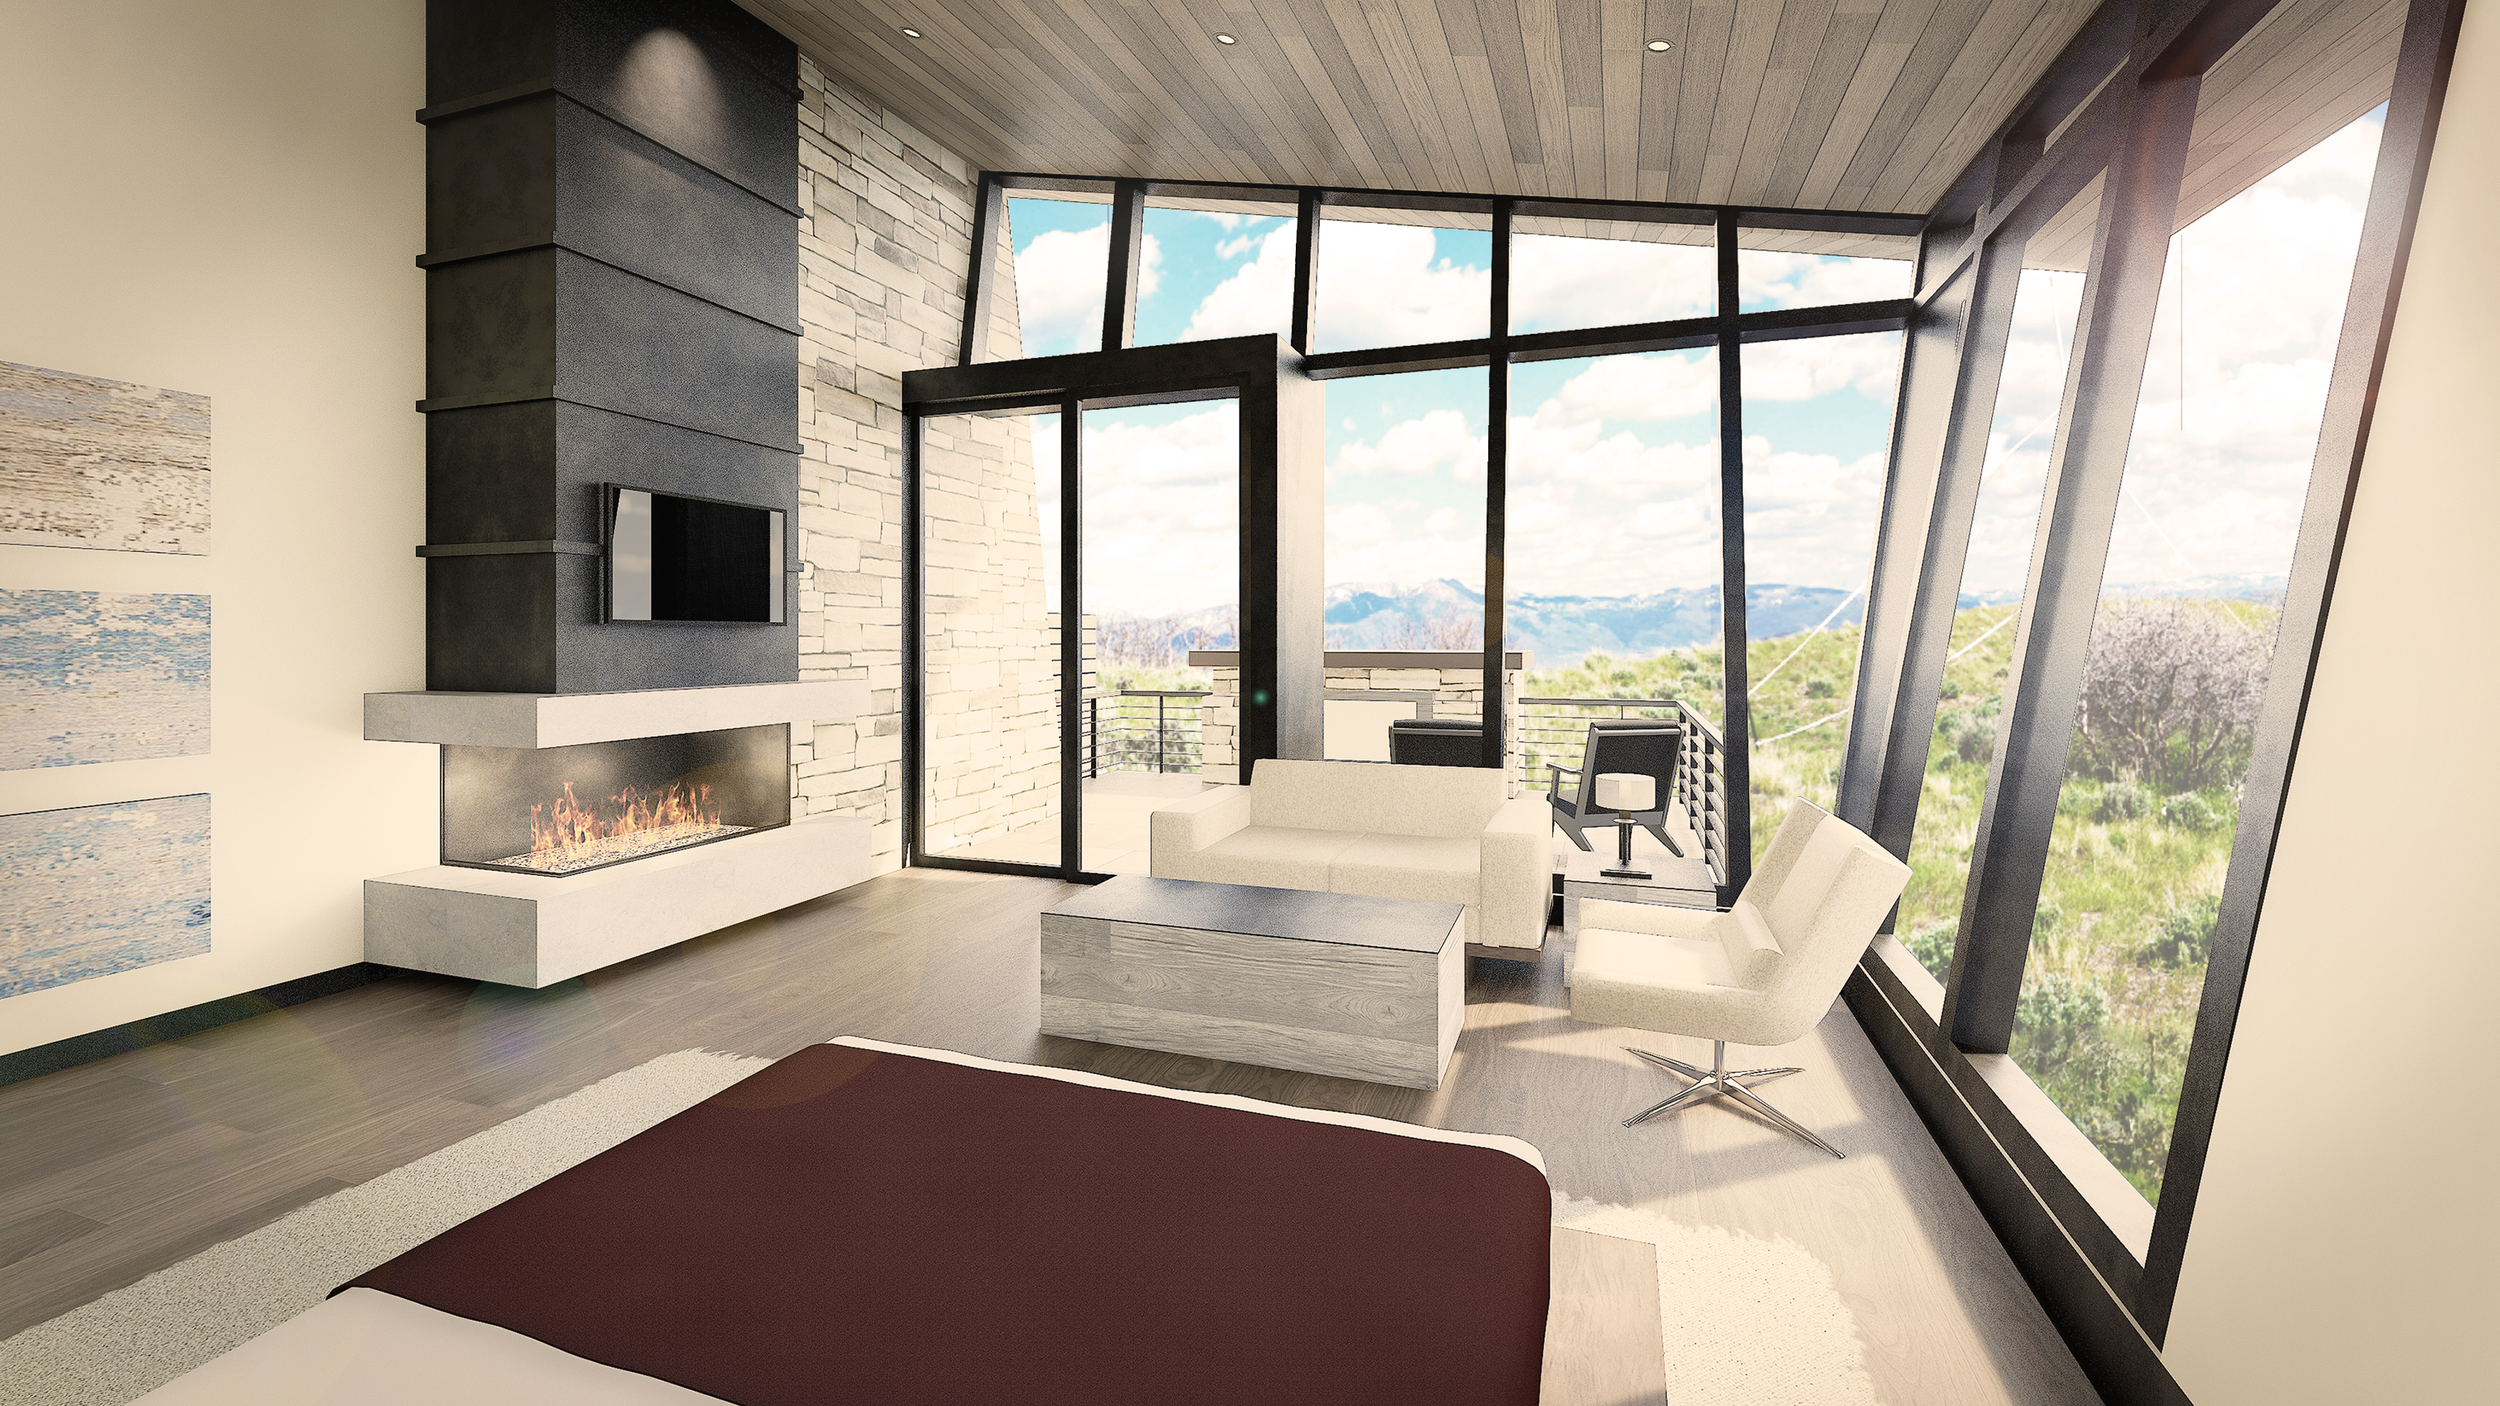 Crisp, clean and functional - set amidst the most incredible views of park city